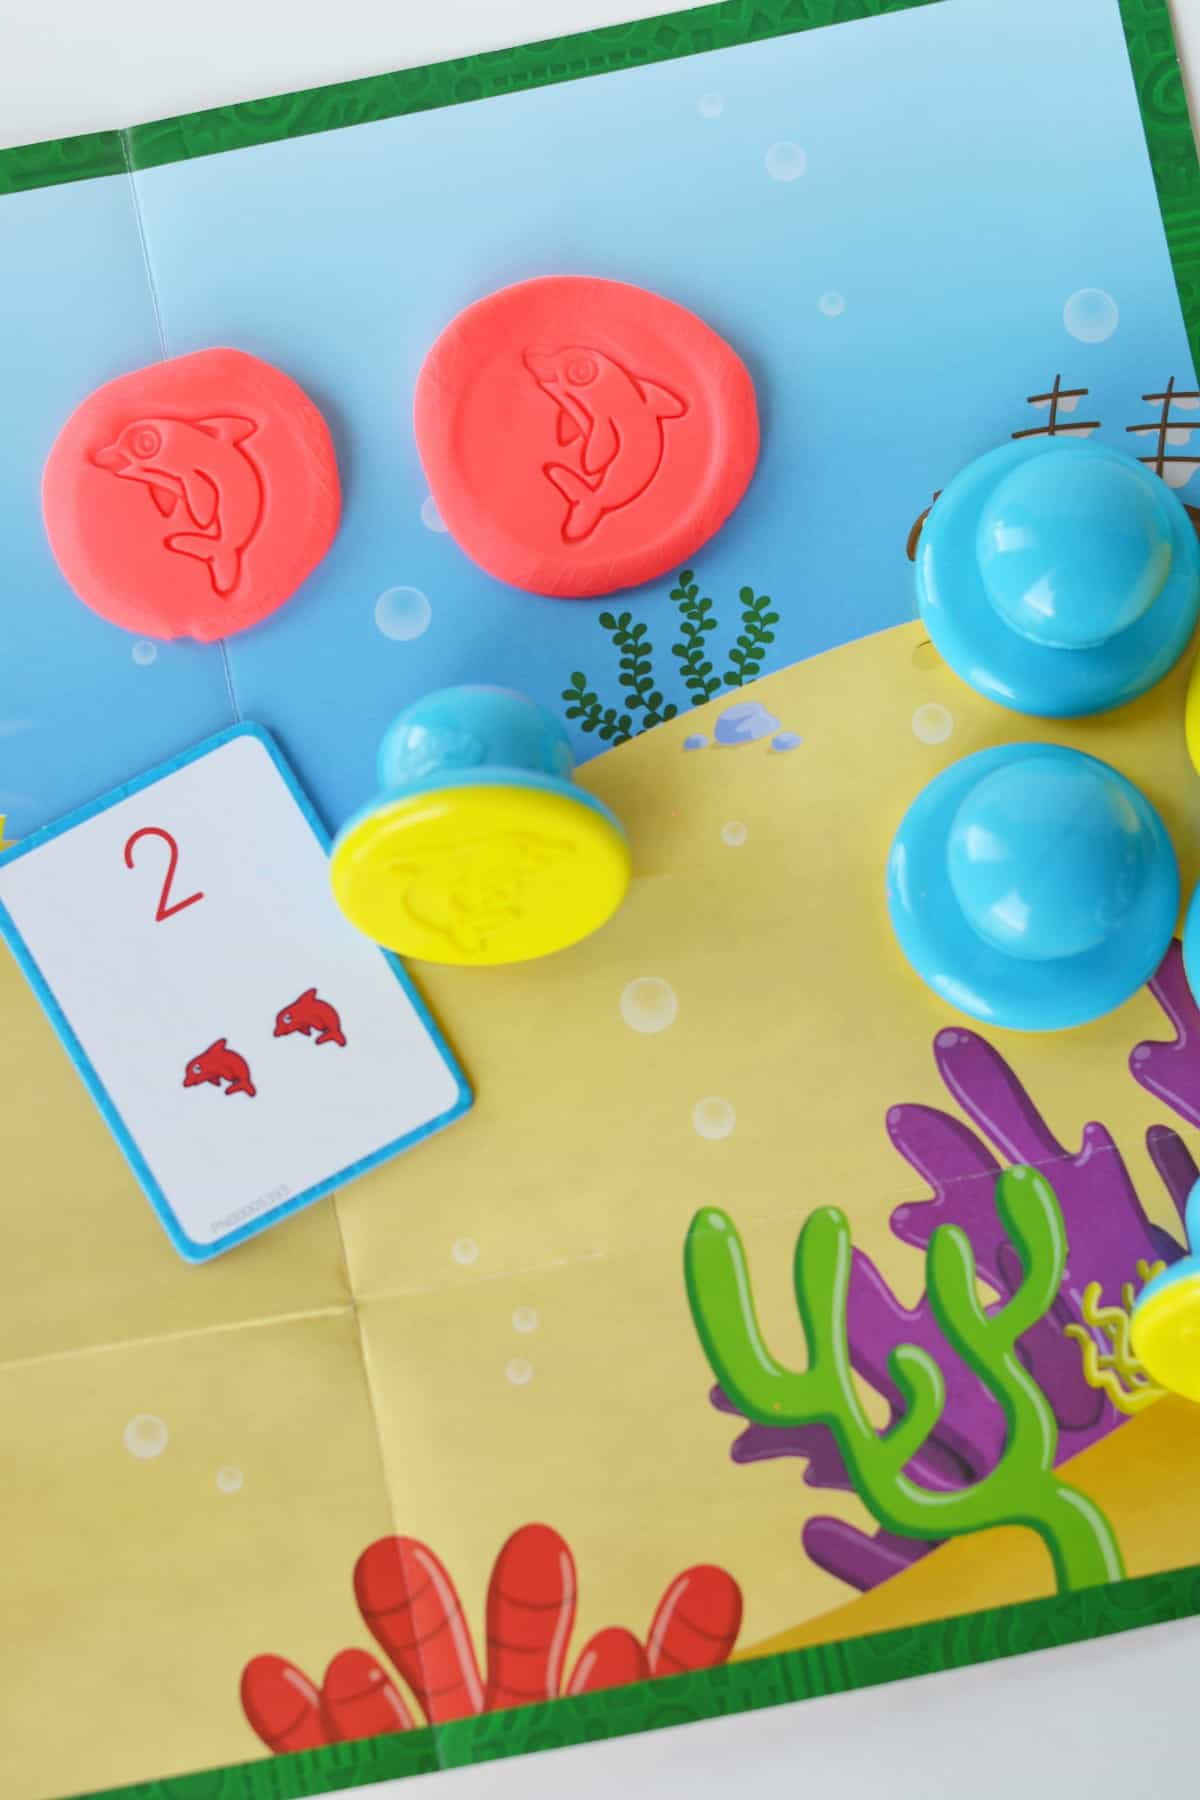 Counting With Play-Doh